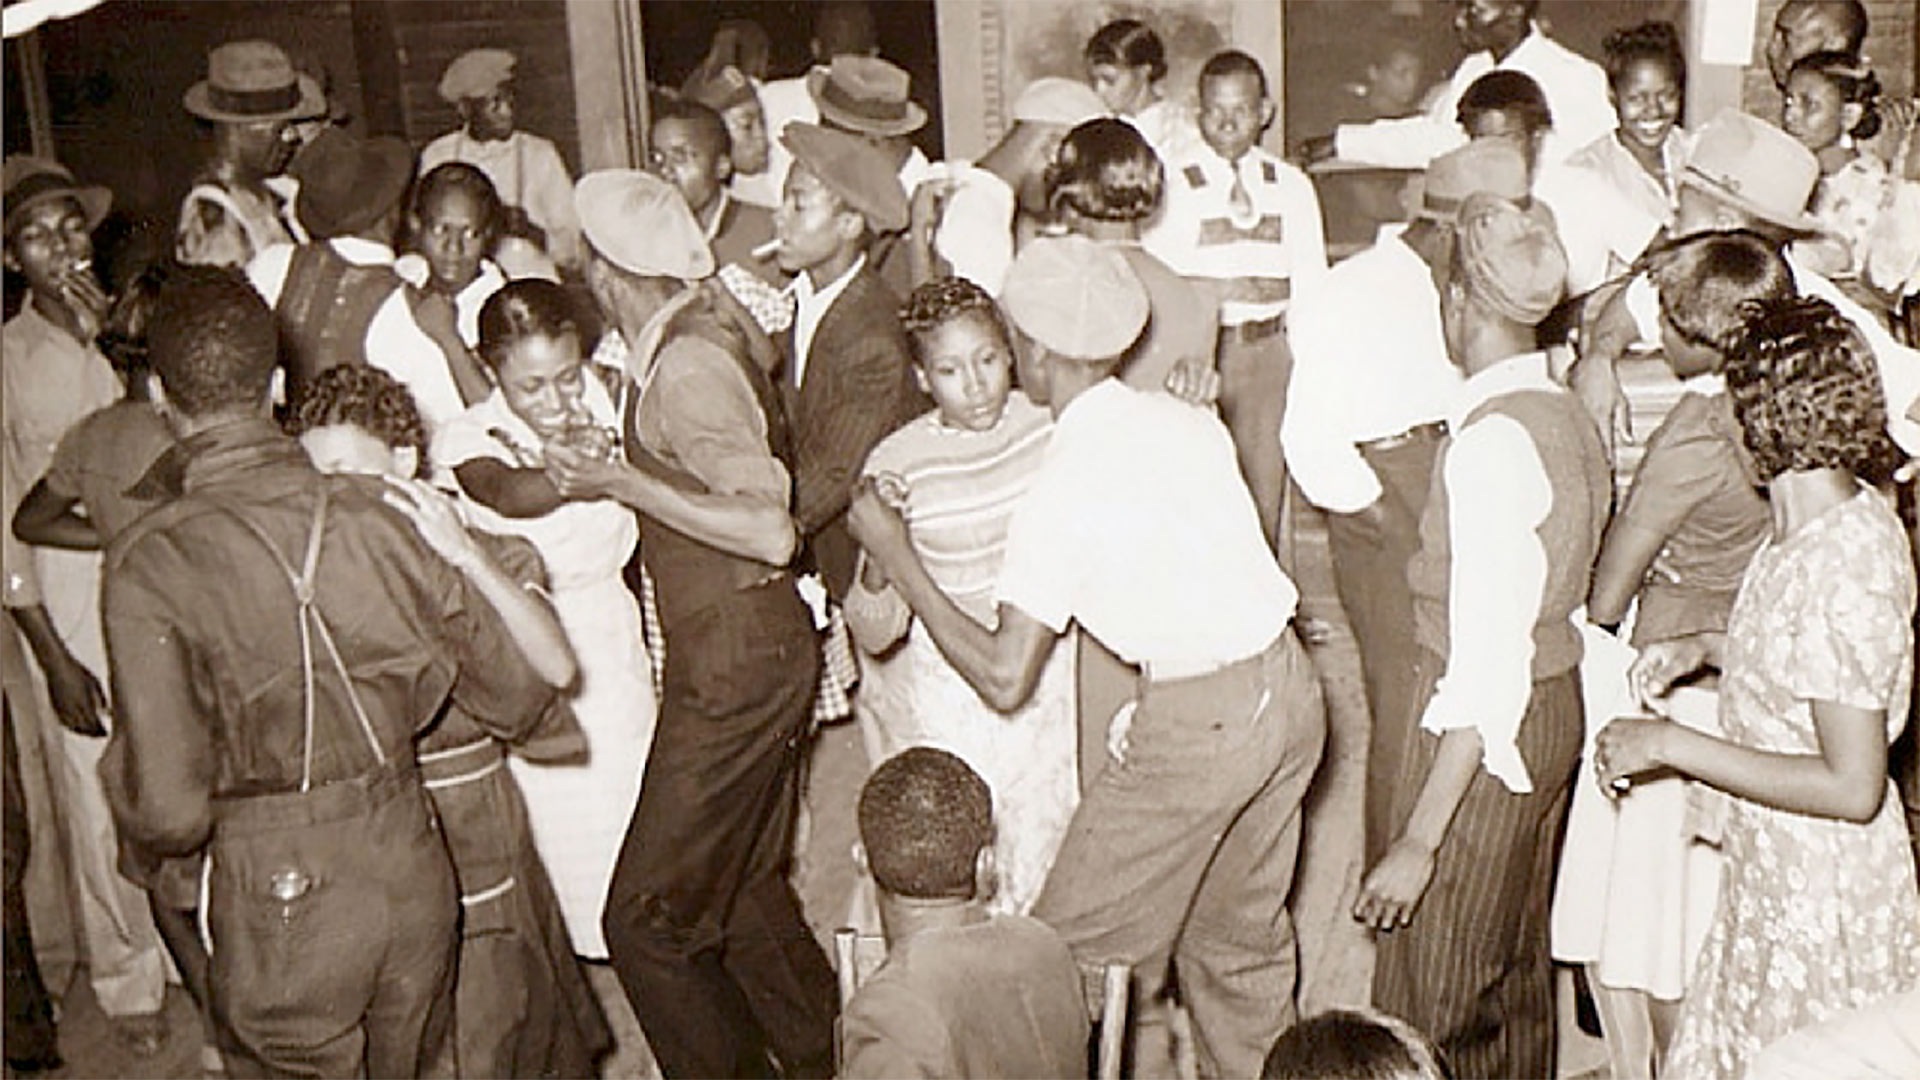 Blues Dancing Exhibit and Oral History Project  overview image